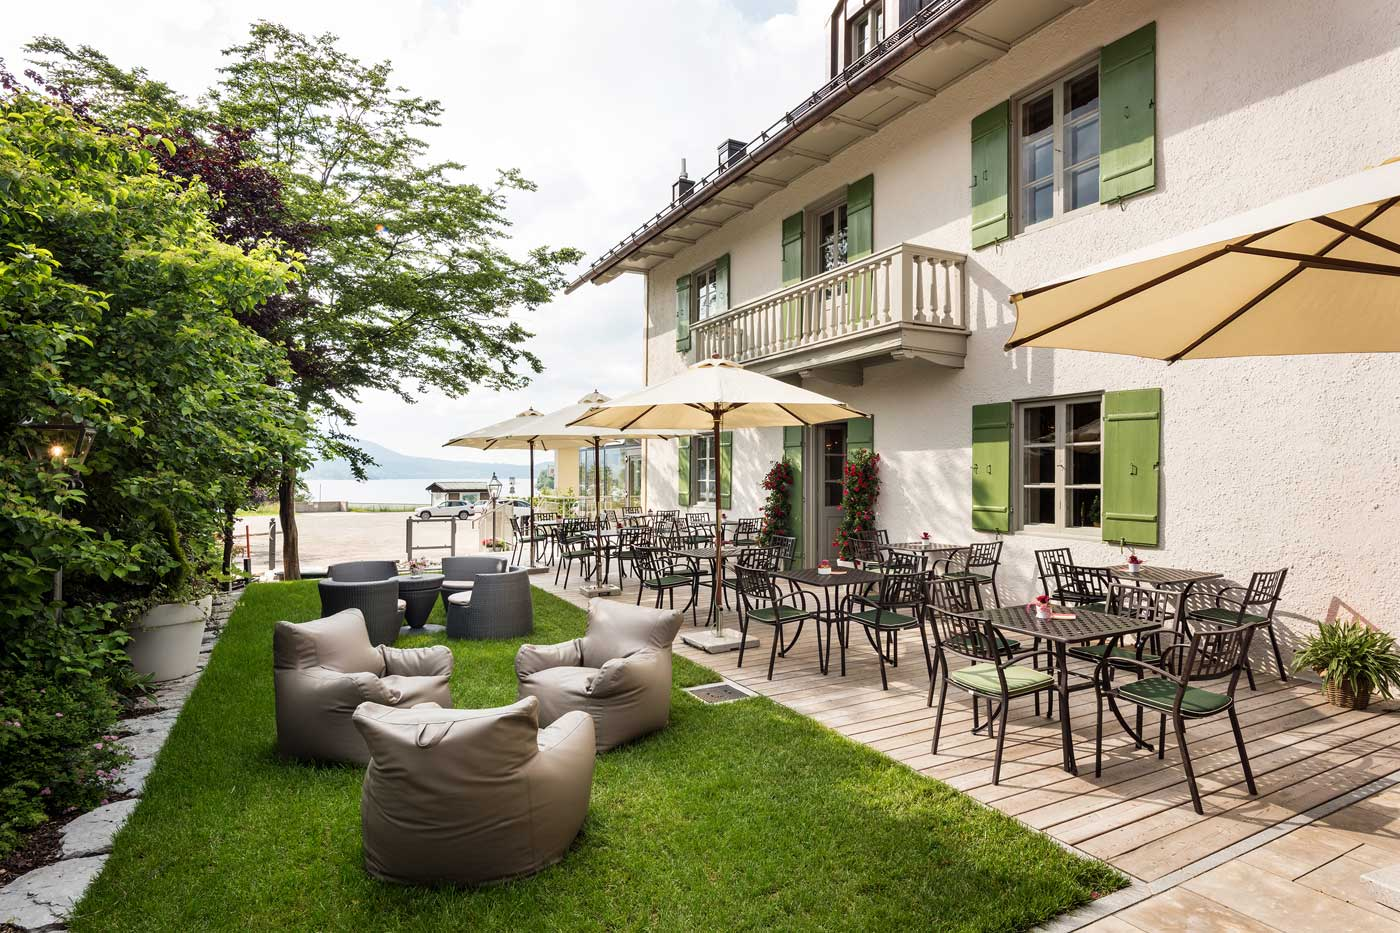 Haus Tegernsee Dish Offers Of The Westerhof Cafe On Lake Tegernsee